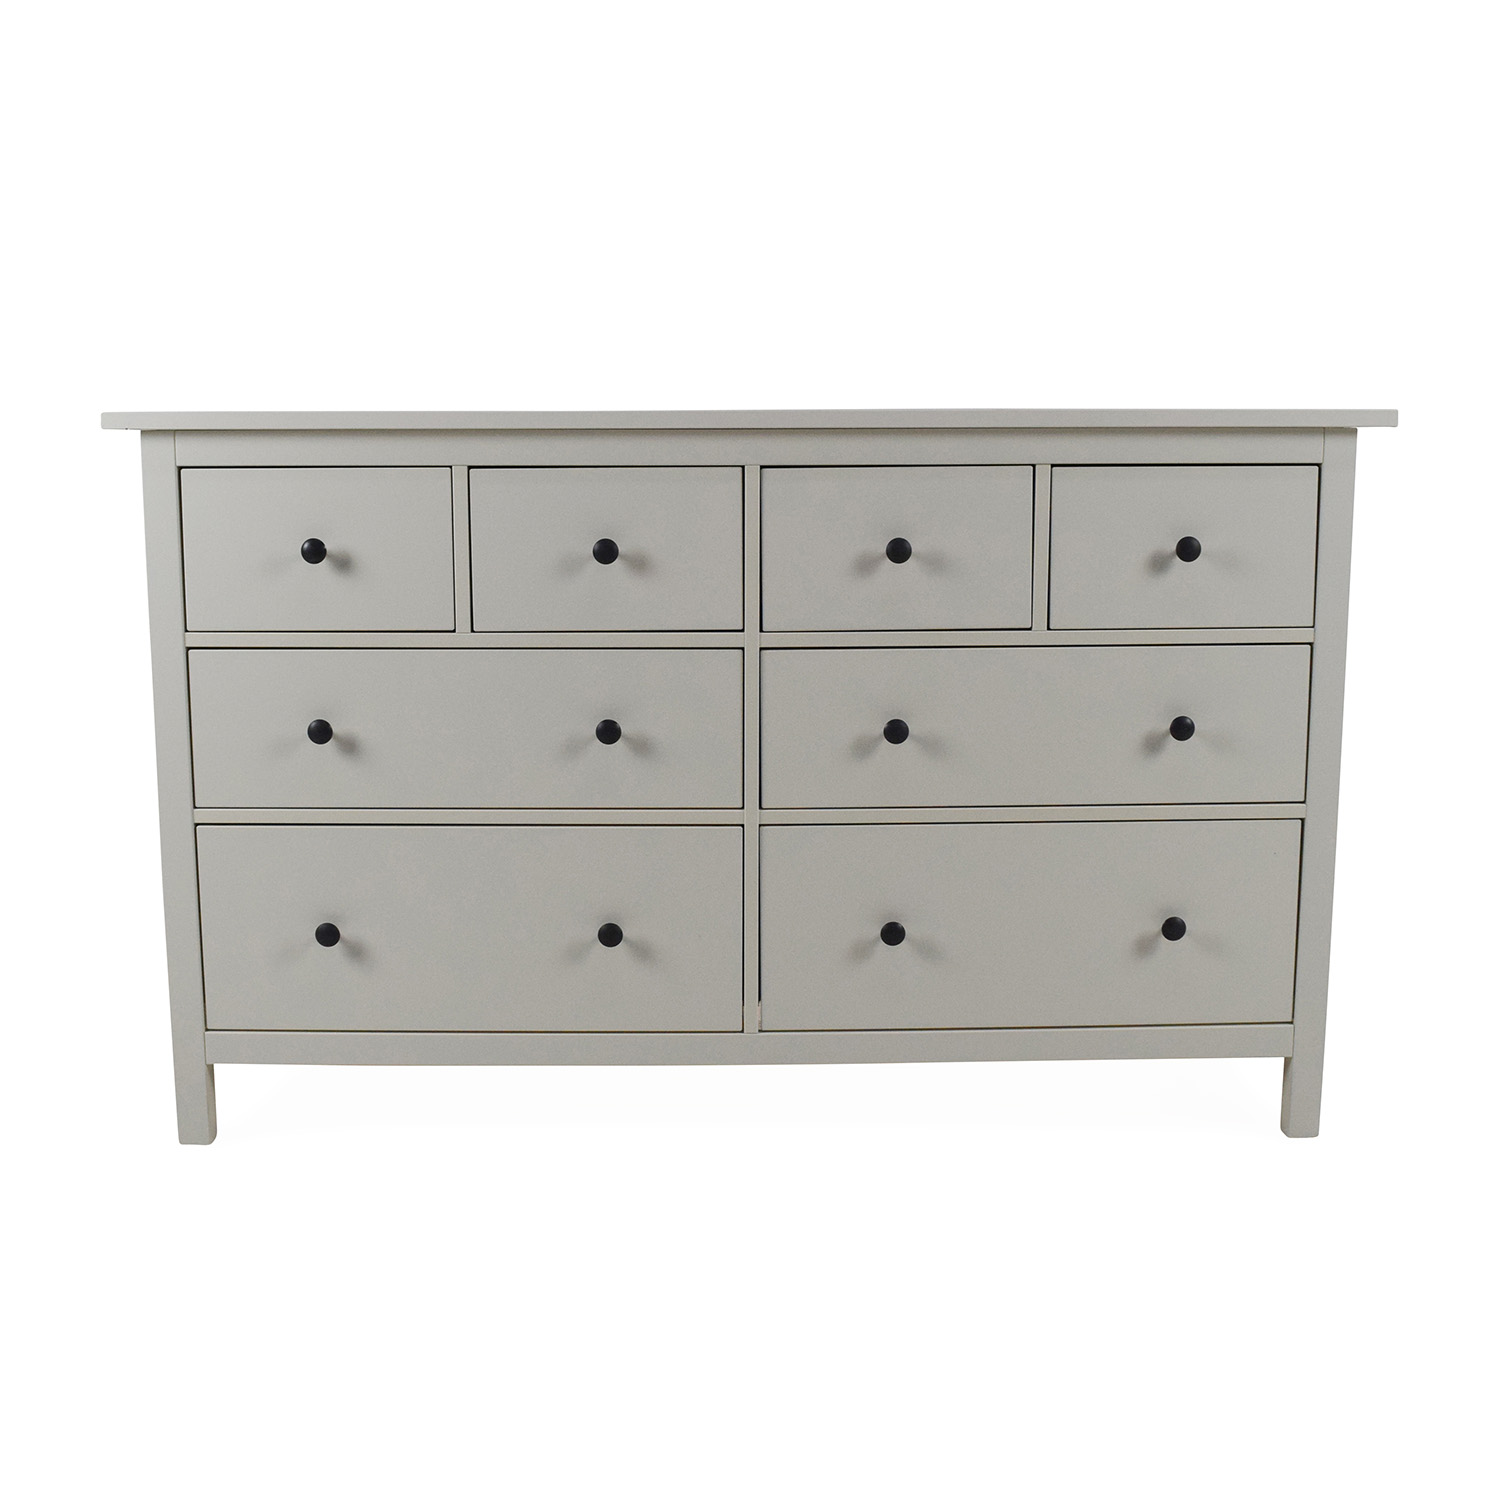 styles for drawer aptdeco mirror drawers pict incredible and files chest with dresser ikea of hemnes uncategorized popular